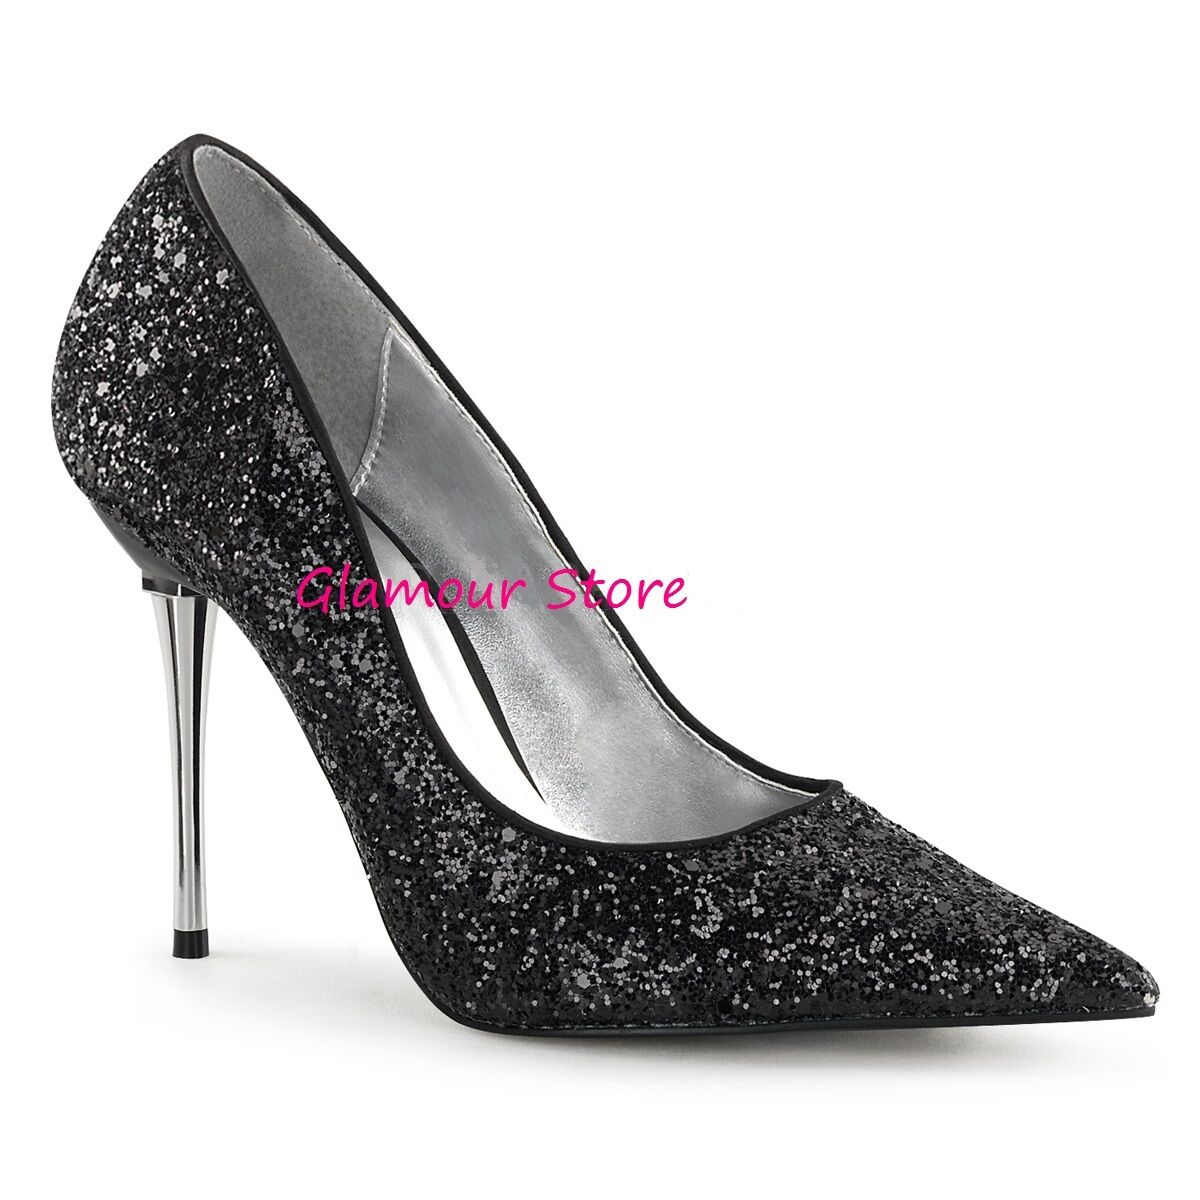 Sexy DECOLTE' GLITTER a PUNTA tacco 10 metal dal 35 35 35 al 46 negro zapatos GLAMOUR  calidad auténtica